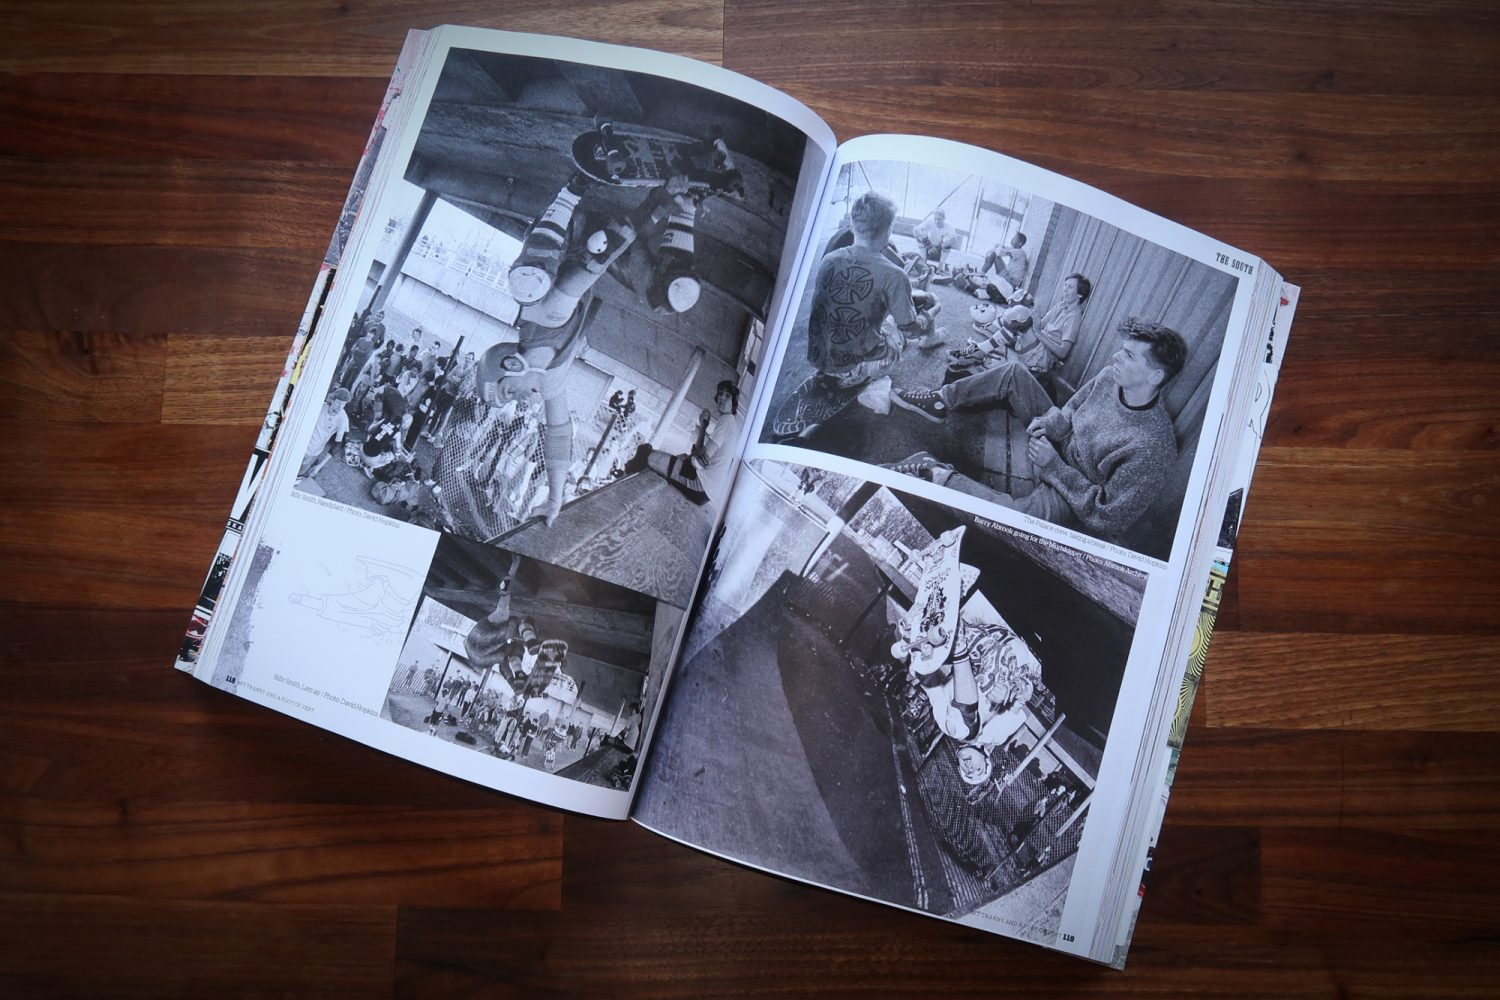 Some of my pics in the book